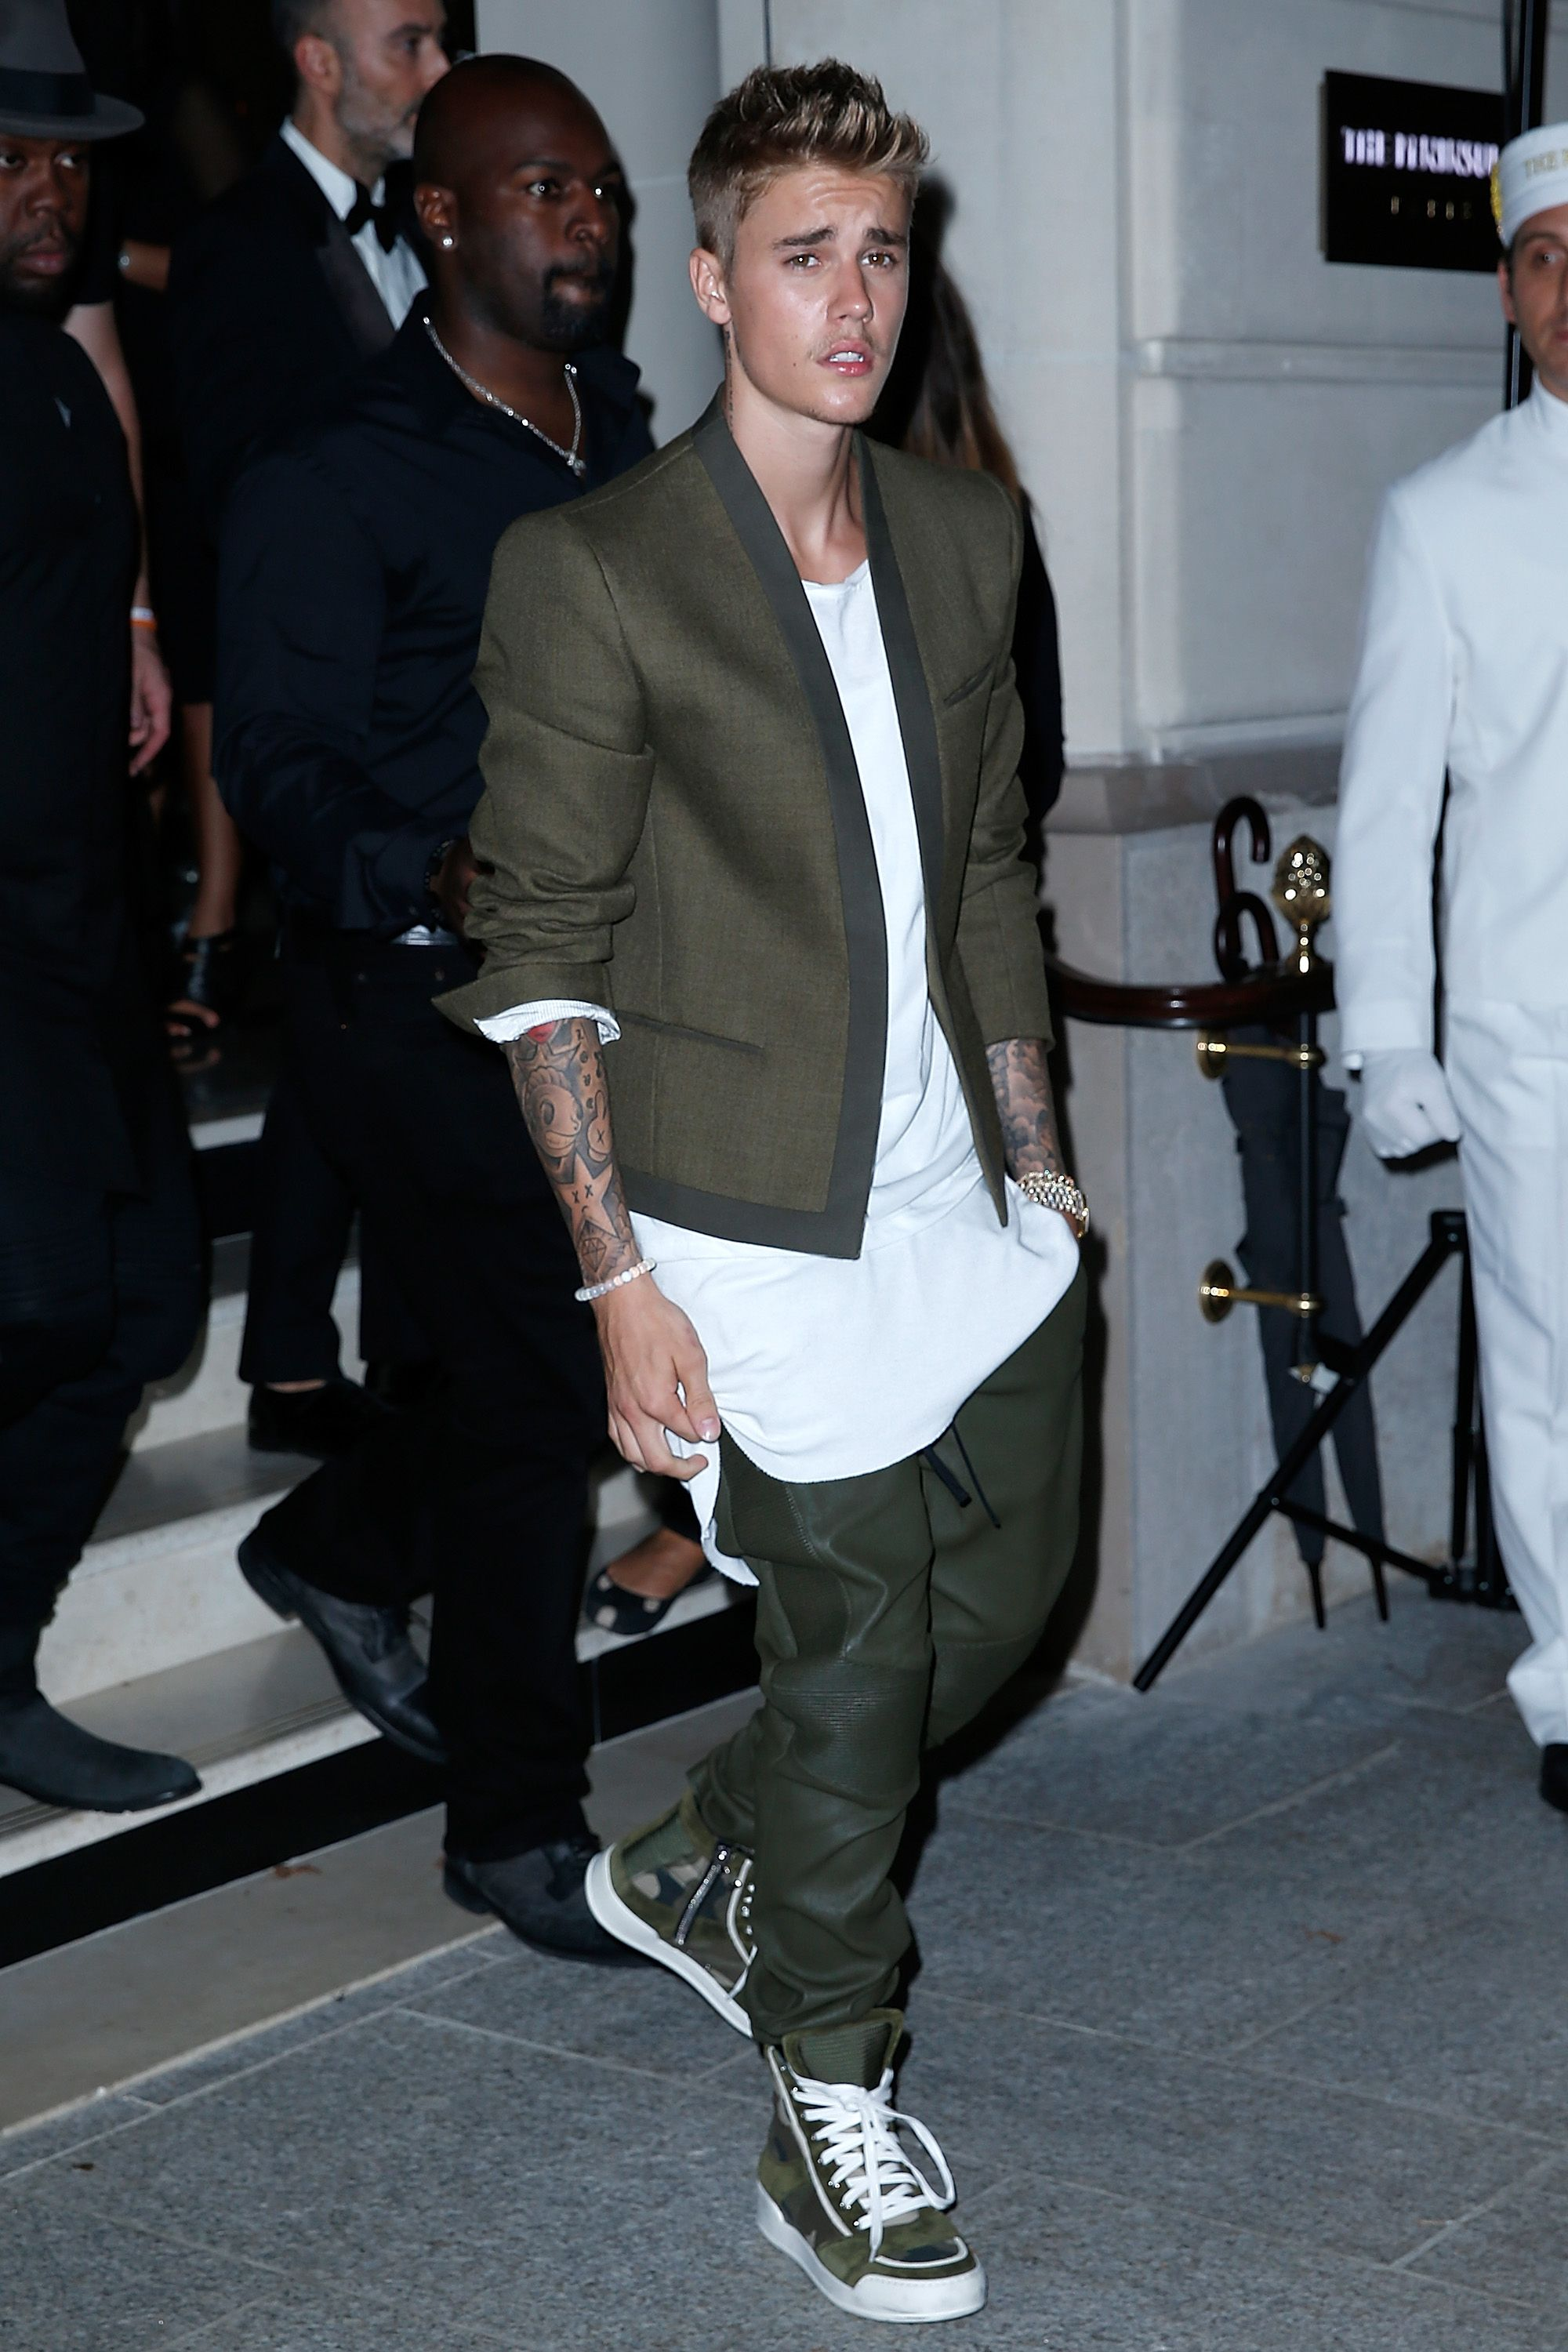 Is This Justin Bieber's New Love Interest?